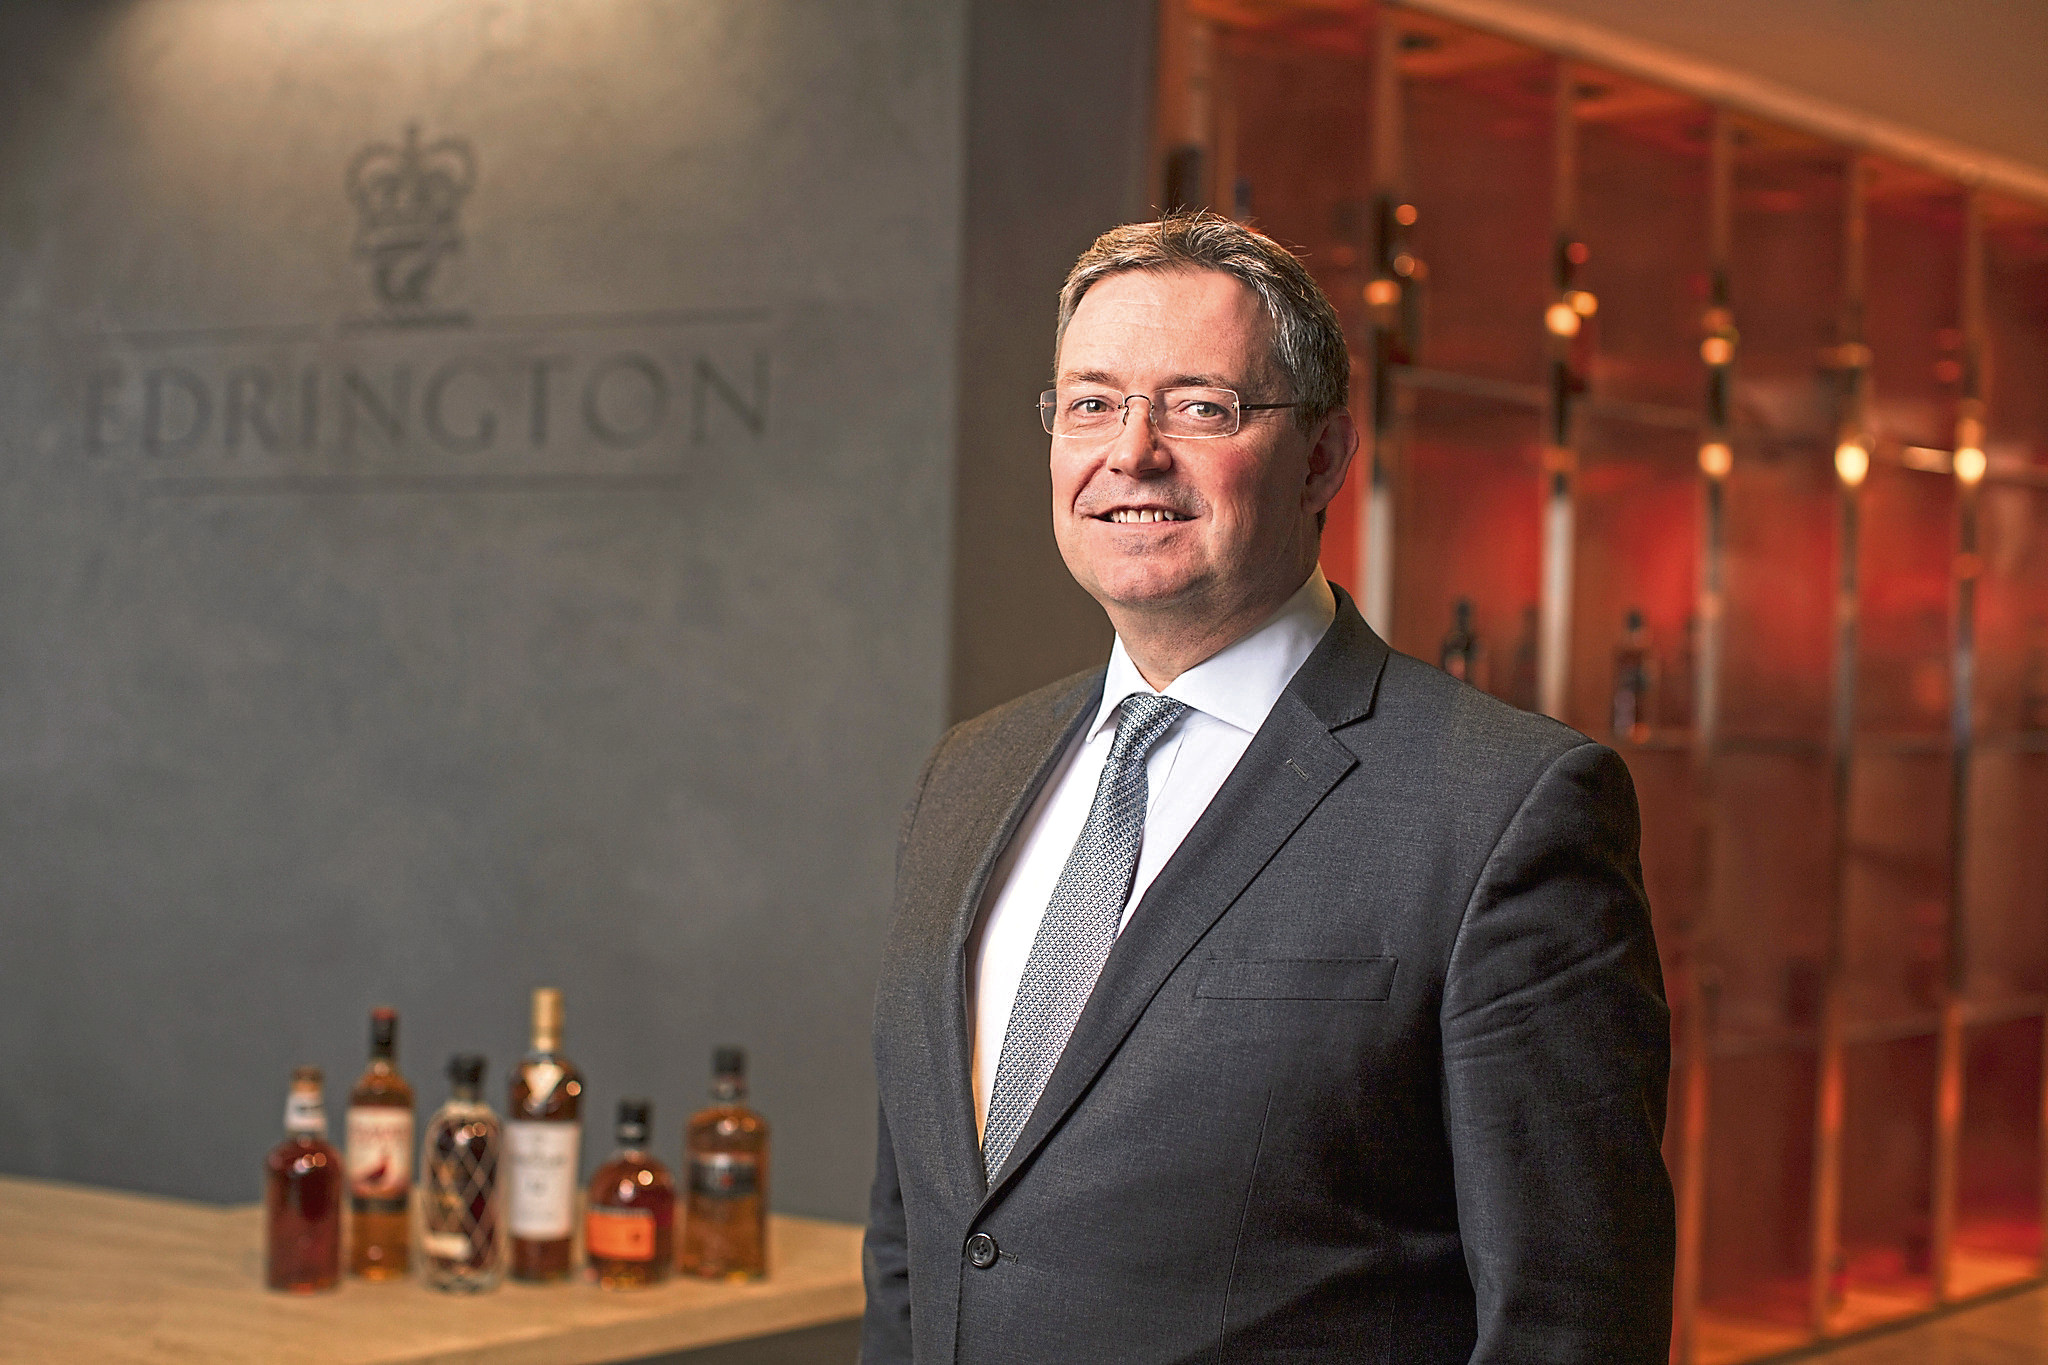 Edrington Group chief executive Scott McCroskie